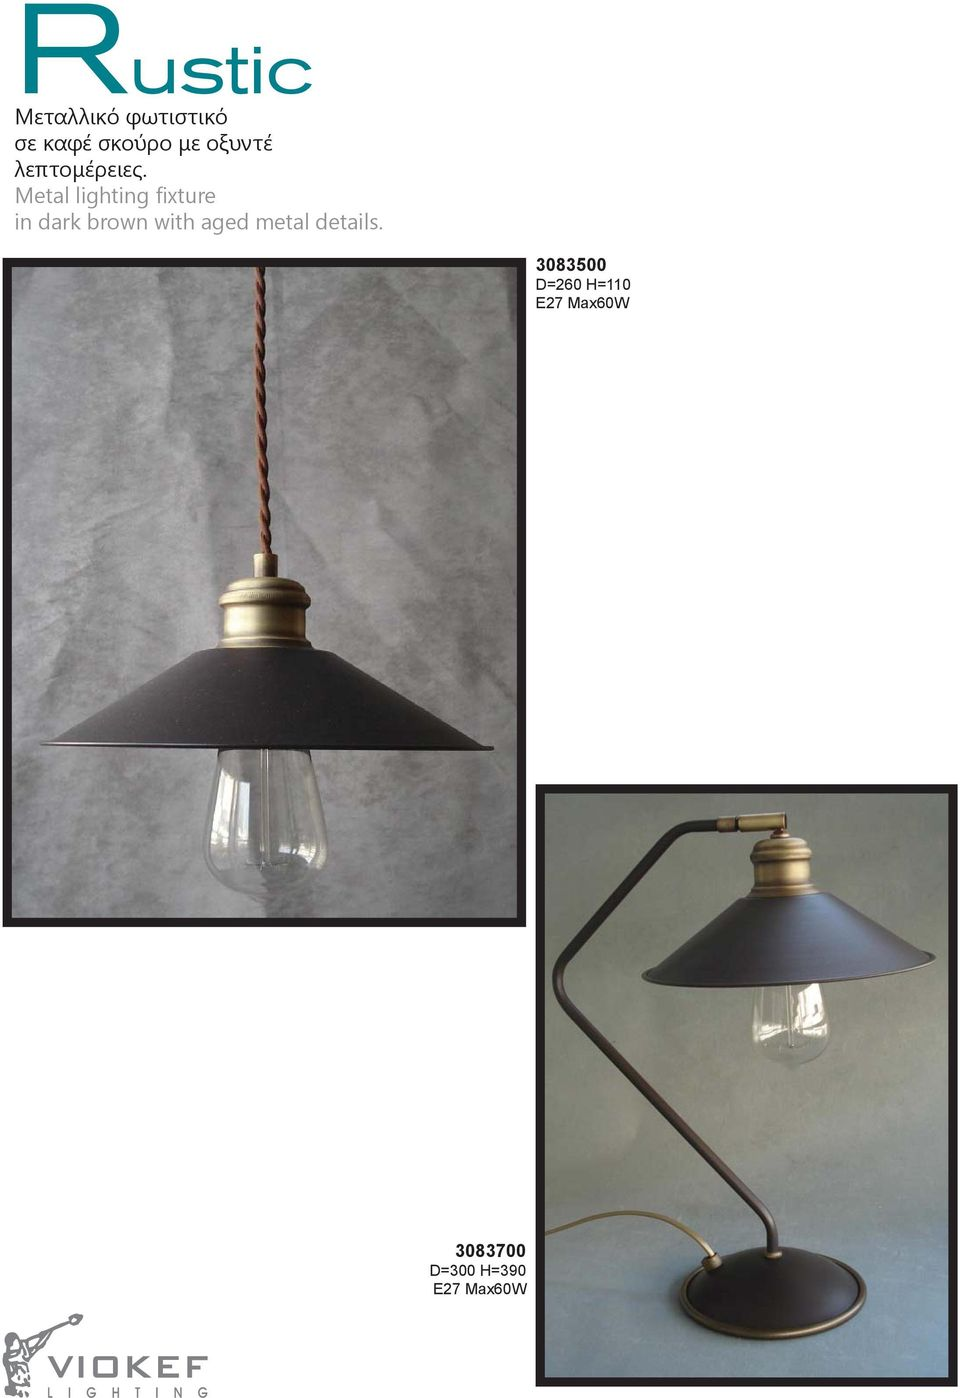 Metal lighting fixture in dark brown with aged